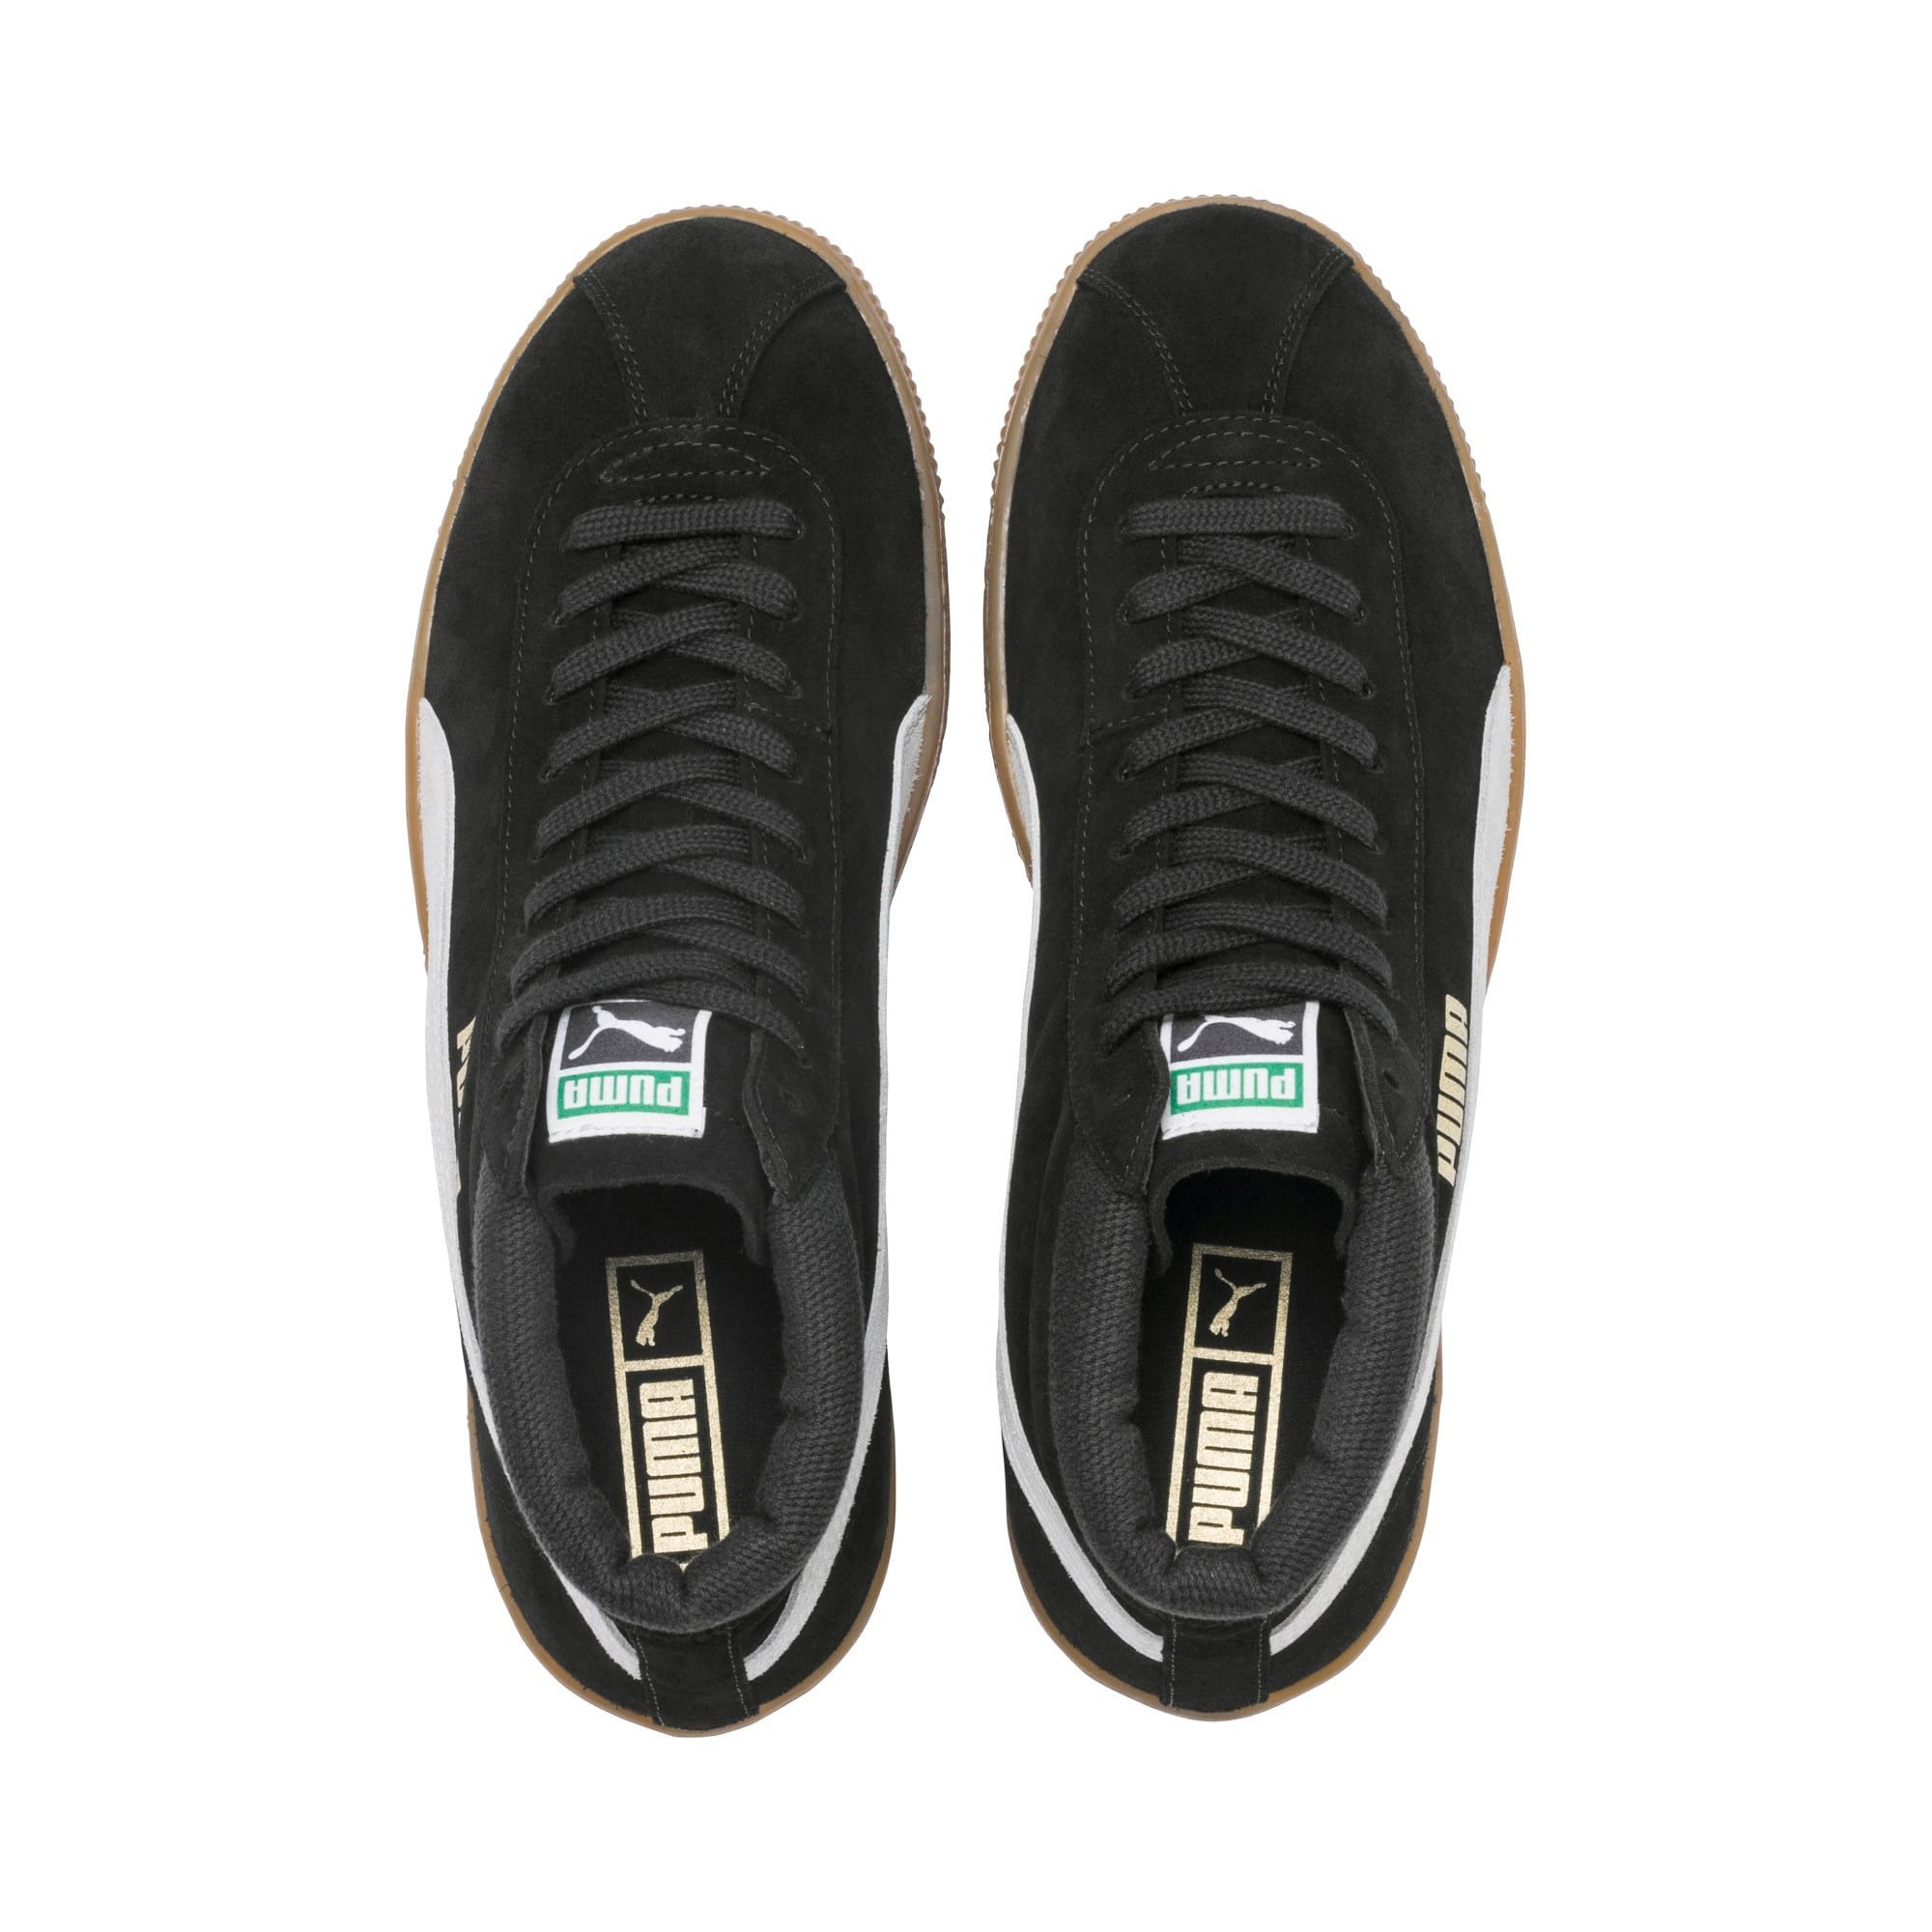 Thumbnail 7 of スウェード '68 ミッド スニーカー, Puma Black-Whisper White, medium-JPN